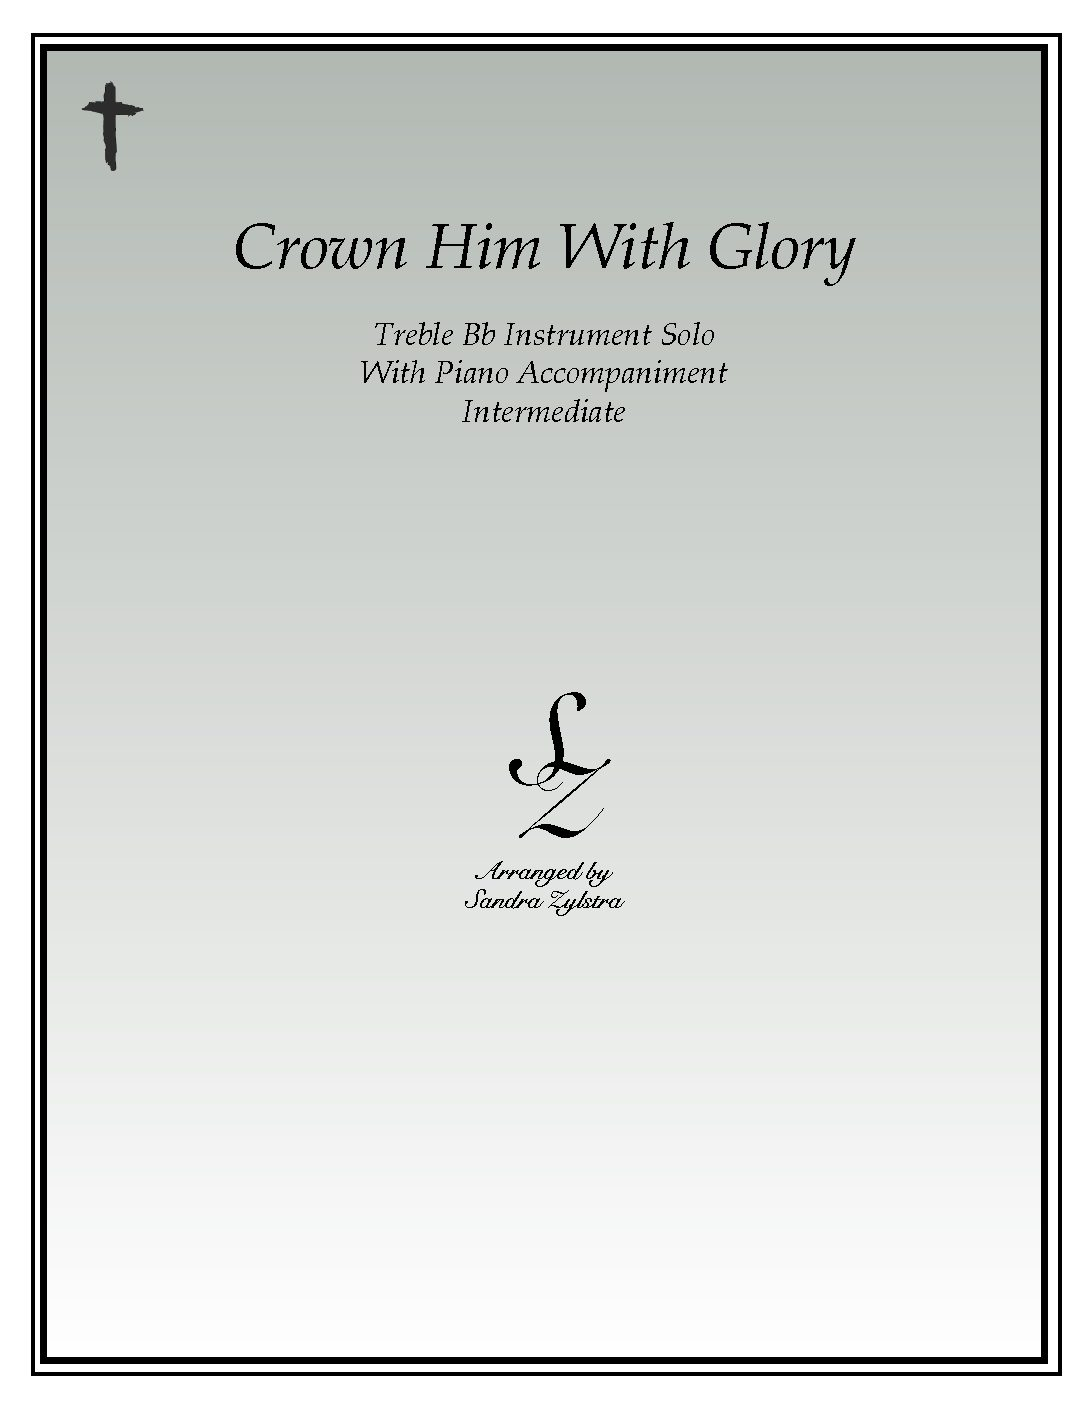 IS 22 Crown Him With Glory 01 Treble Bb pdf